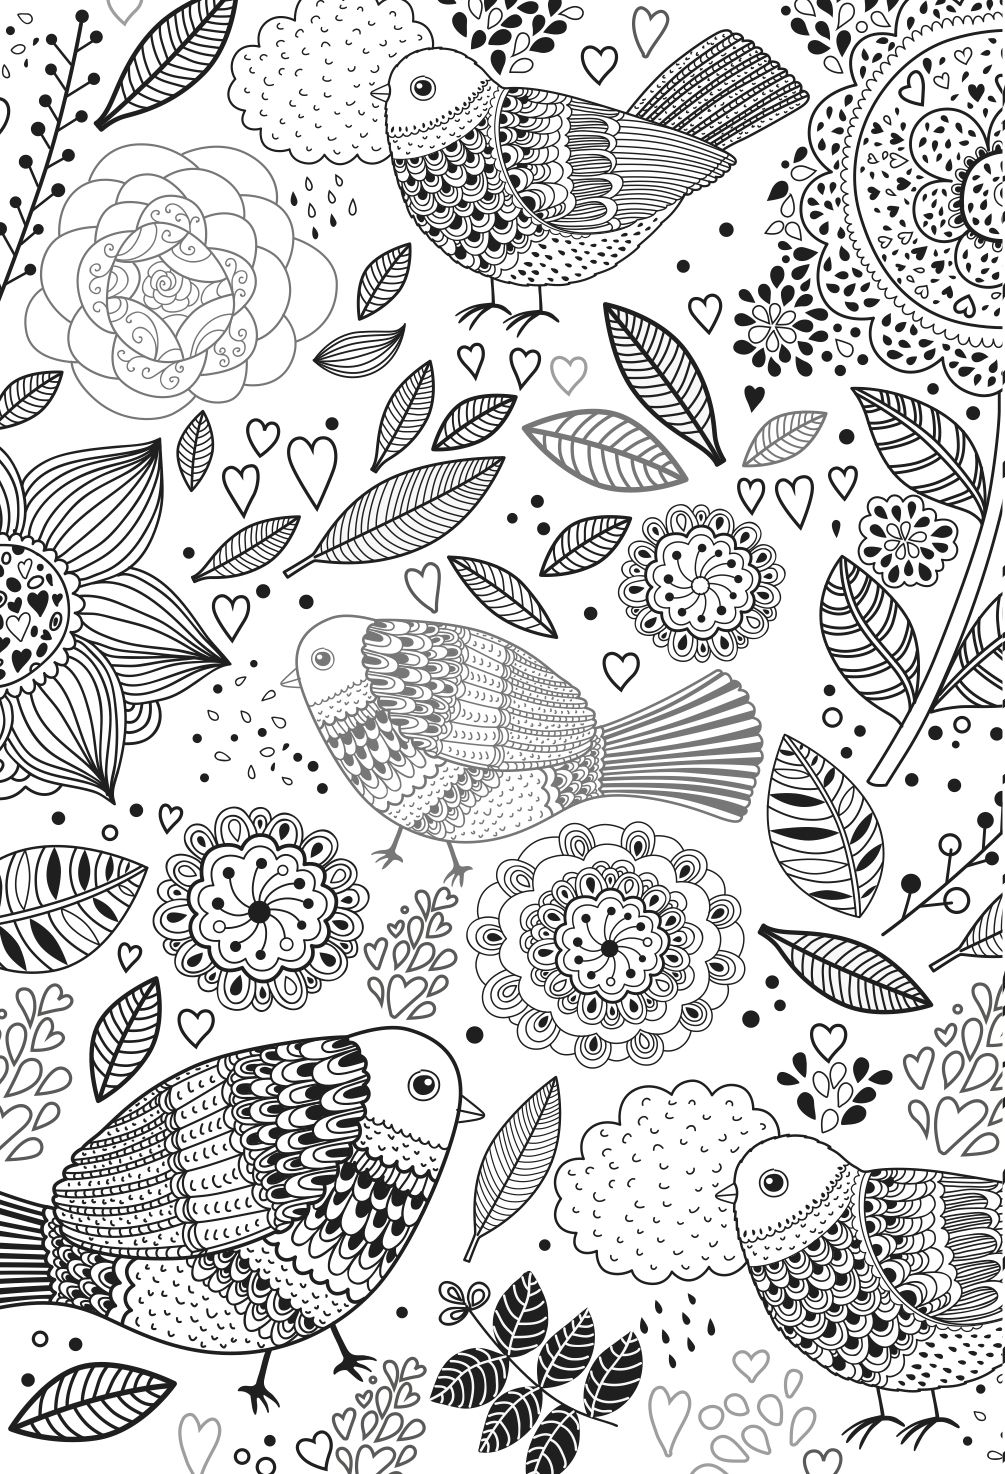 Libros Para Colorear Adultos Colouring Books For Adults Dibujos Dibujos Para Colorear